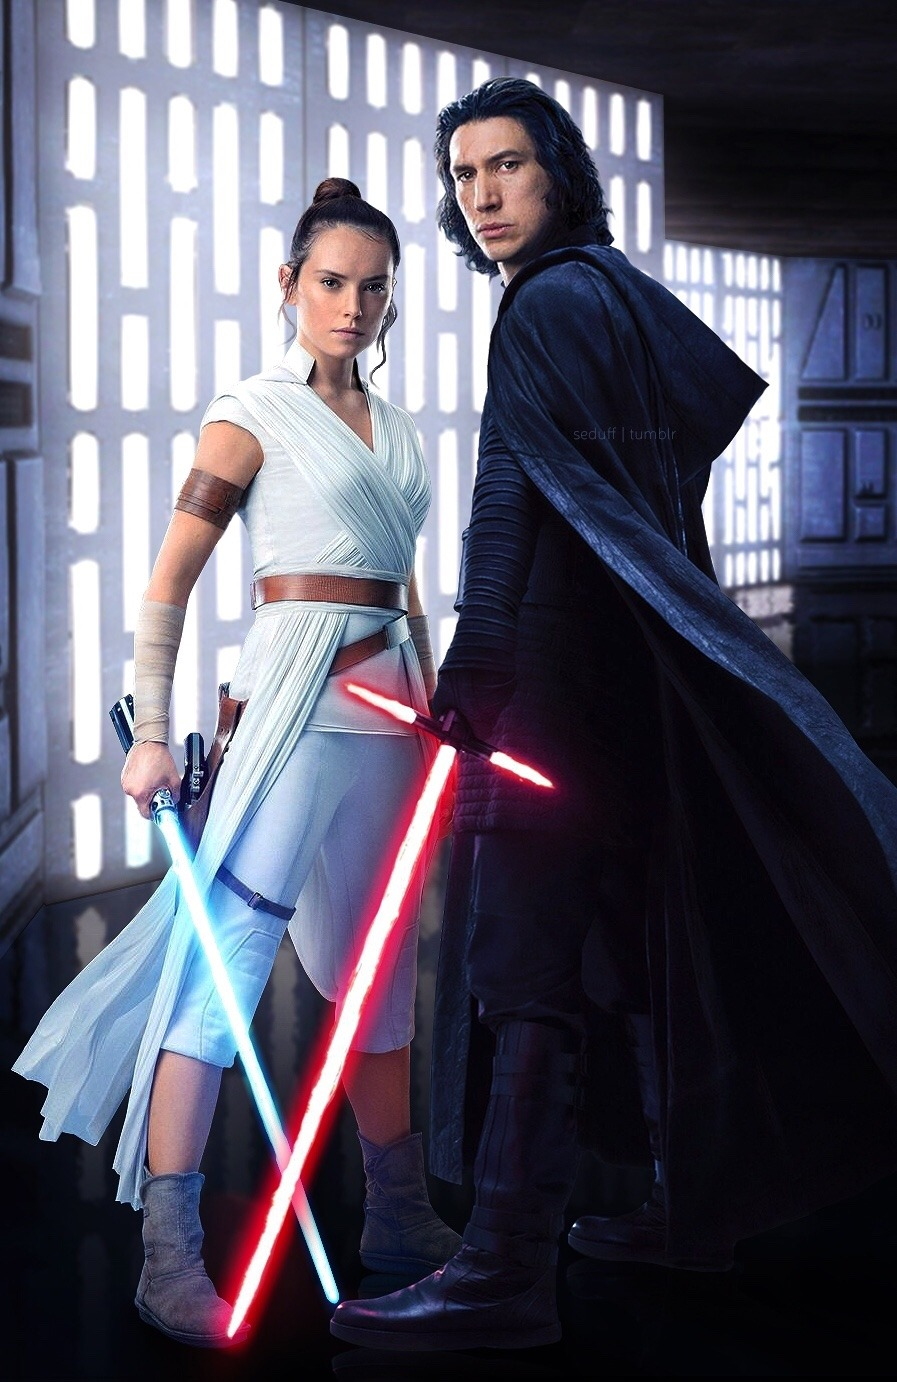 Ben Solo And Rey In The Rise Of Skywalker Etoile Etoile Star Wars Photo 43209871 Fanpop